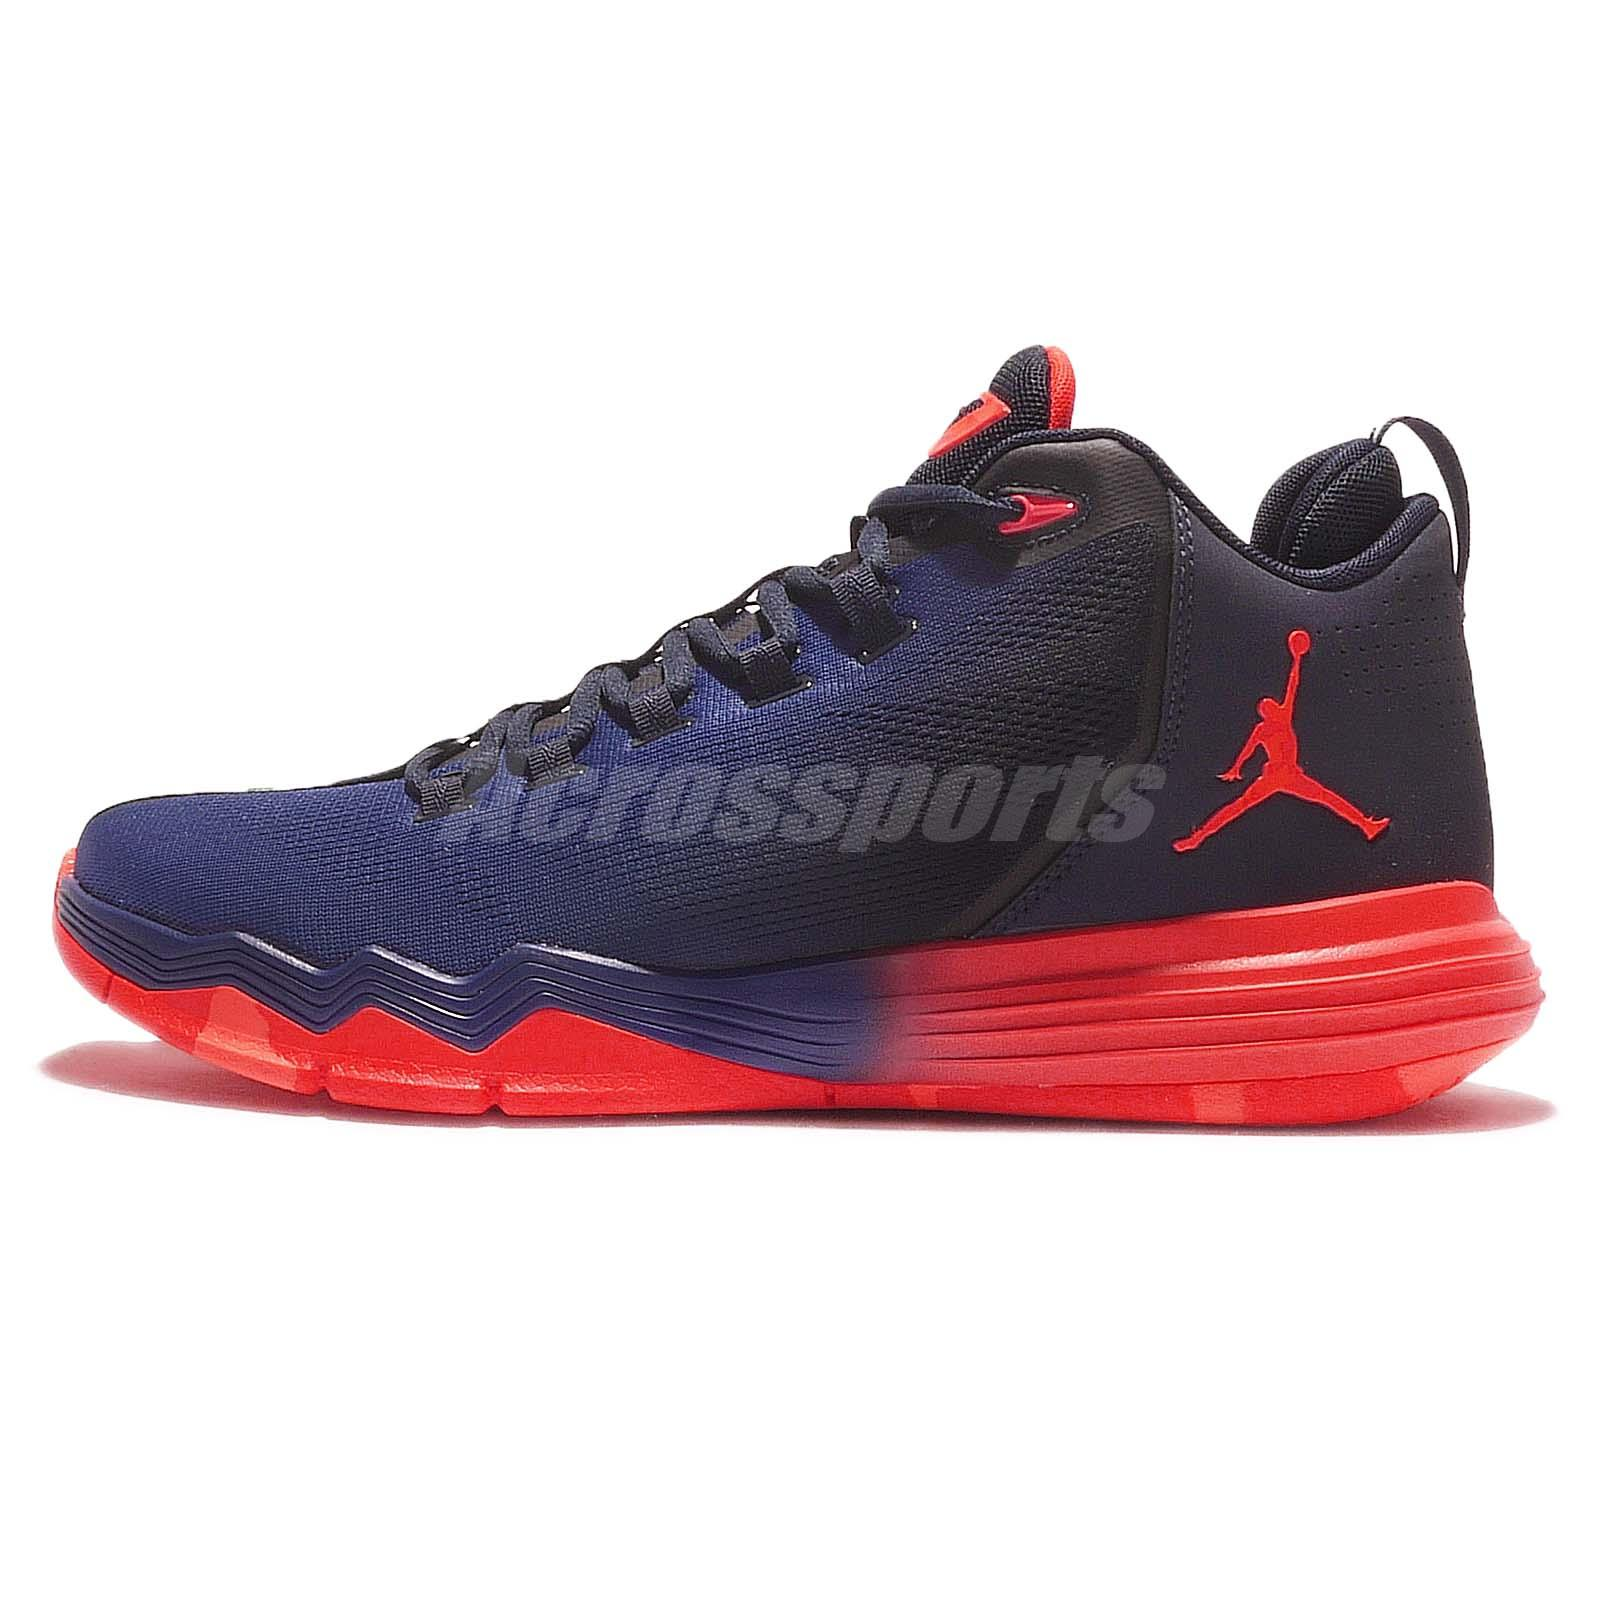 quality design 72275 1d718 IX AE X 9 Chris Paul Navy Red Mens Basketball Shoes 845340 Zapatilla Jordan  ...